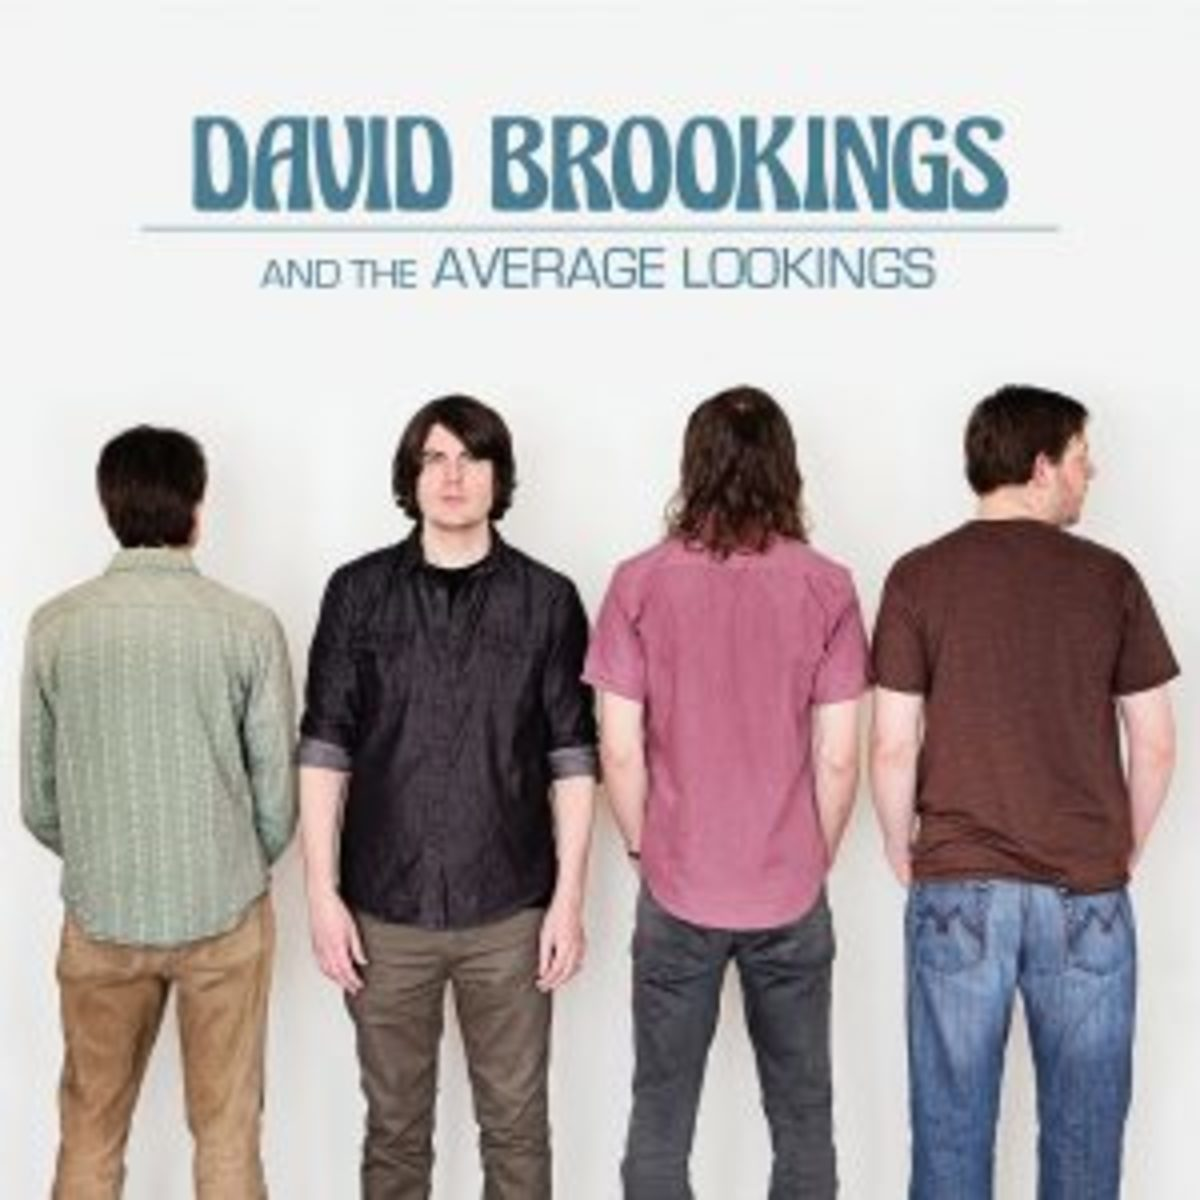 DAVID BROOKINGS